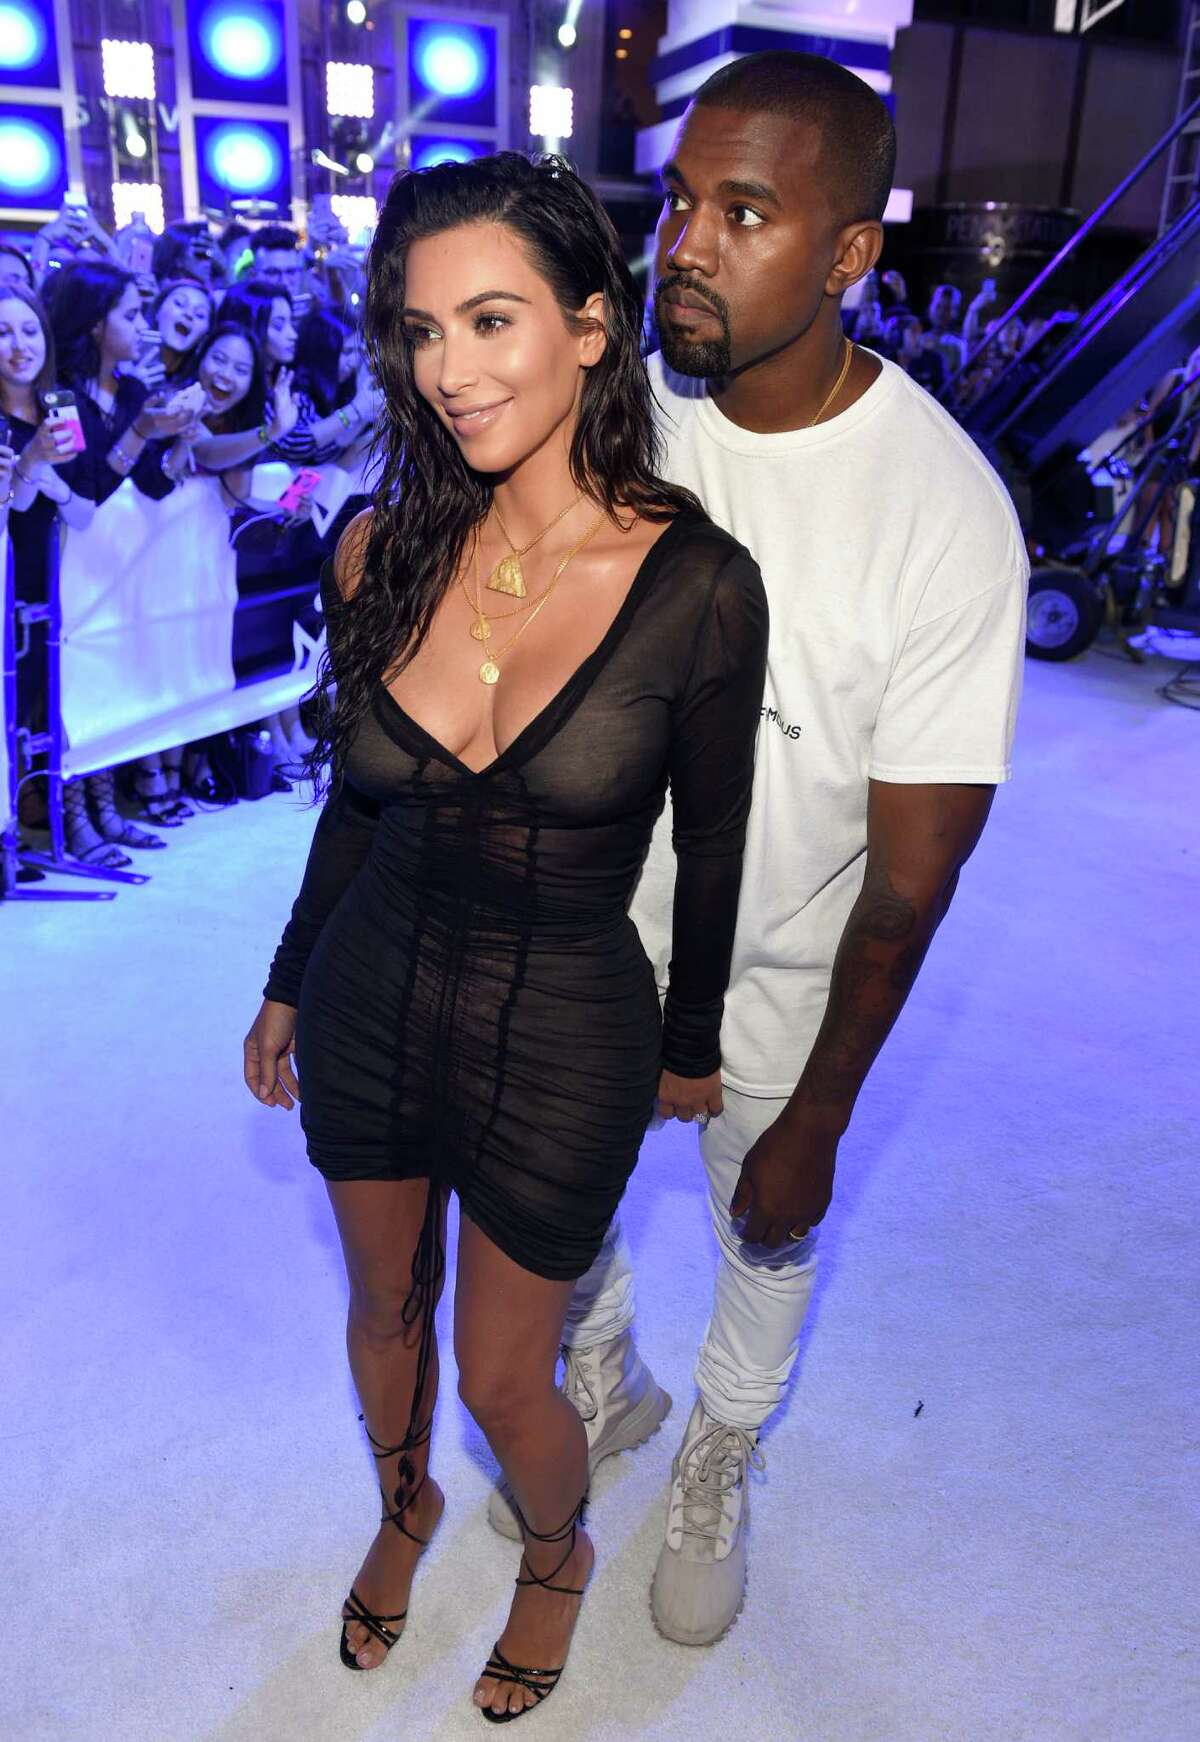 Kim Kardashian West , left, and Kanye West arrive at the MTV Video Music Awards at Madison Square Garden on Sunday, Aug. 28, 2016, in New York. (Photo by Chris Pizzello/Invision/AP)